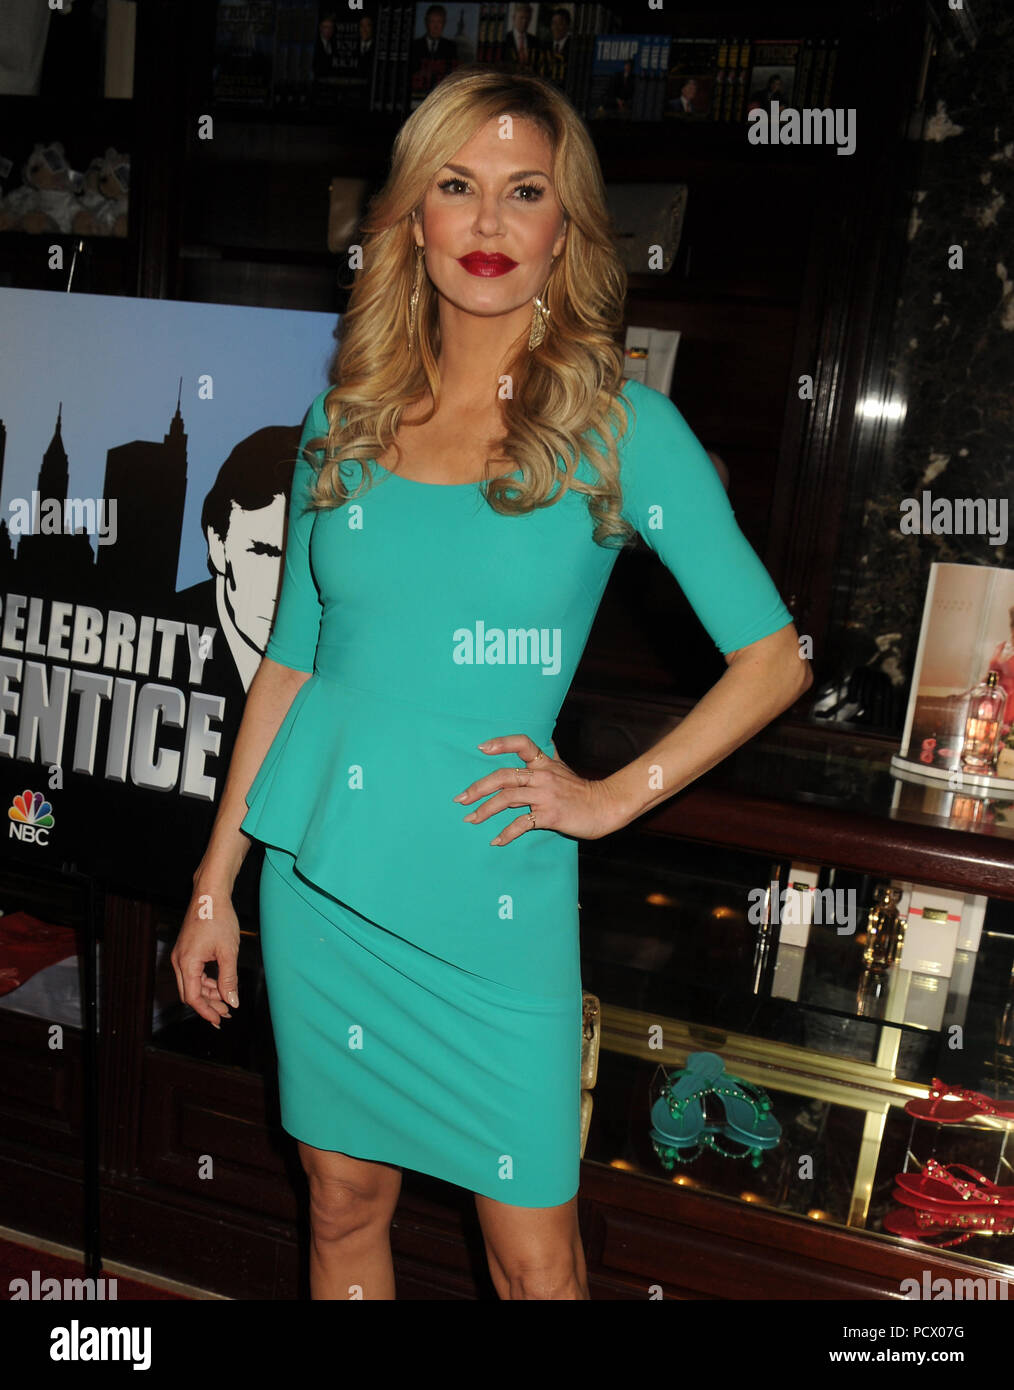 Who Is Brandi Glanville Of 'The Celebrity Apprentice' 2015 ...